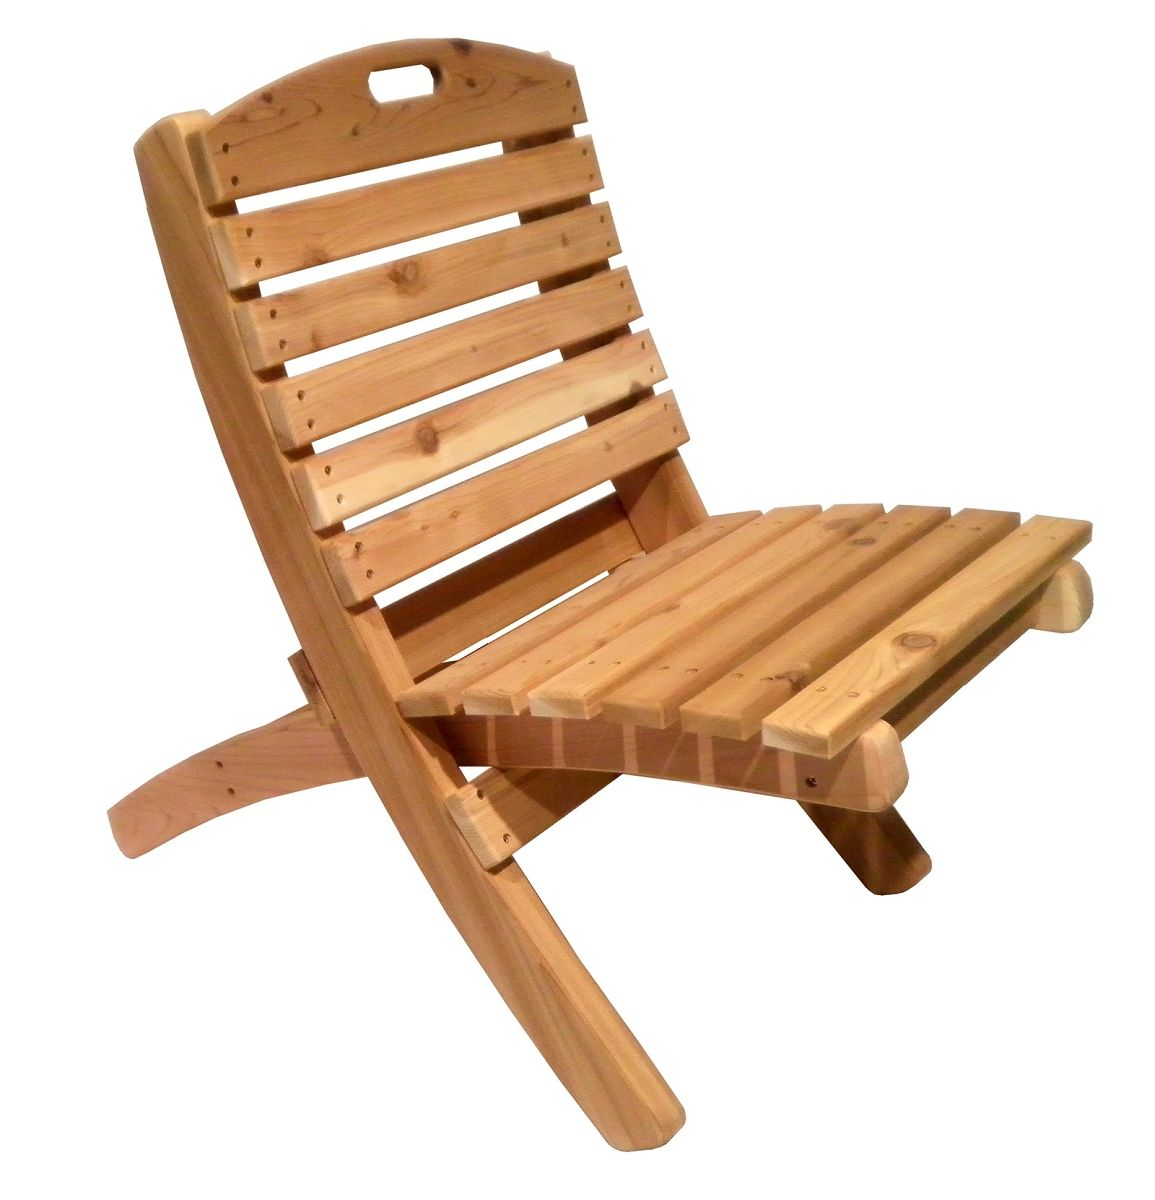 Two Piece Outdoor Patio Chair Western Red Cedar Wood Diy Outdoor Furniture Diy Patio Furniture Outdoor Patio Chairs